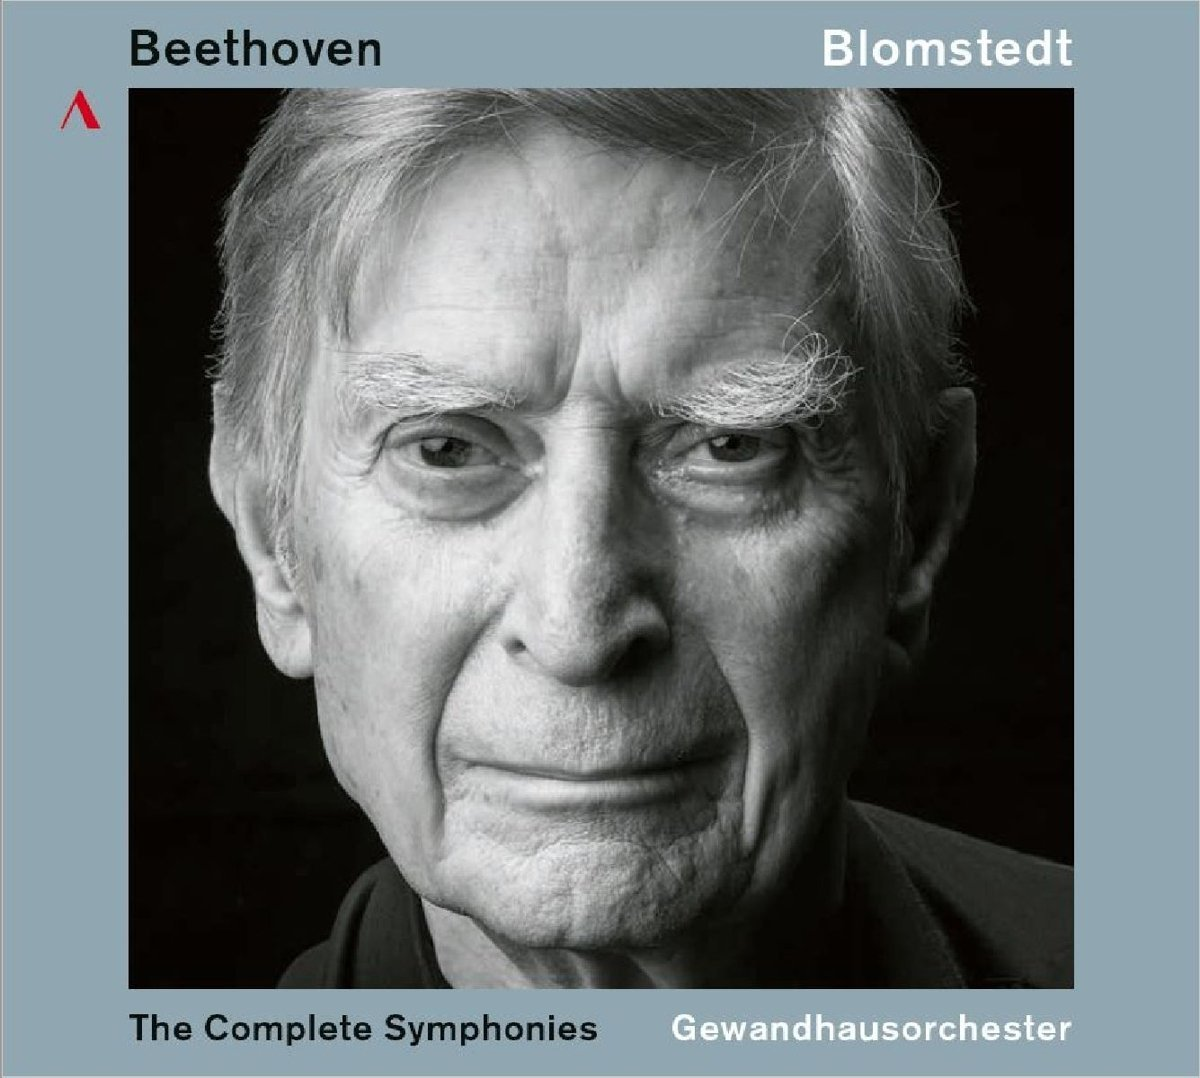 Blomstedt's Beethoven